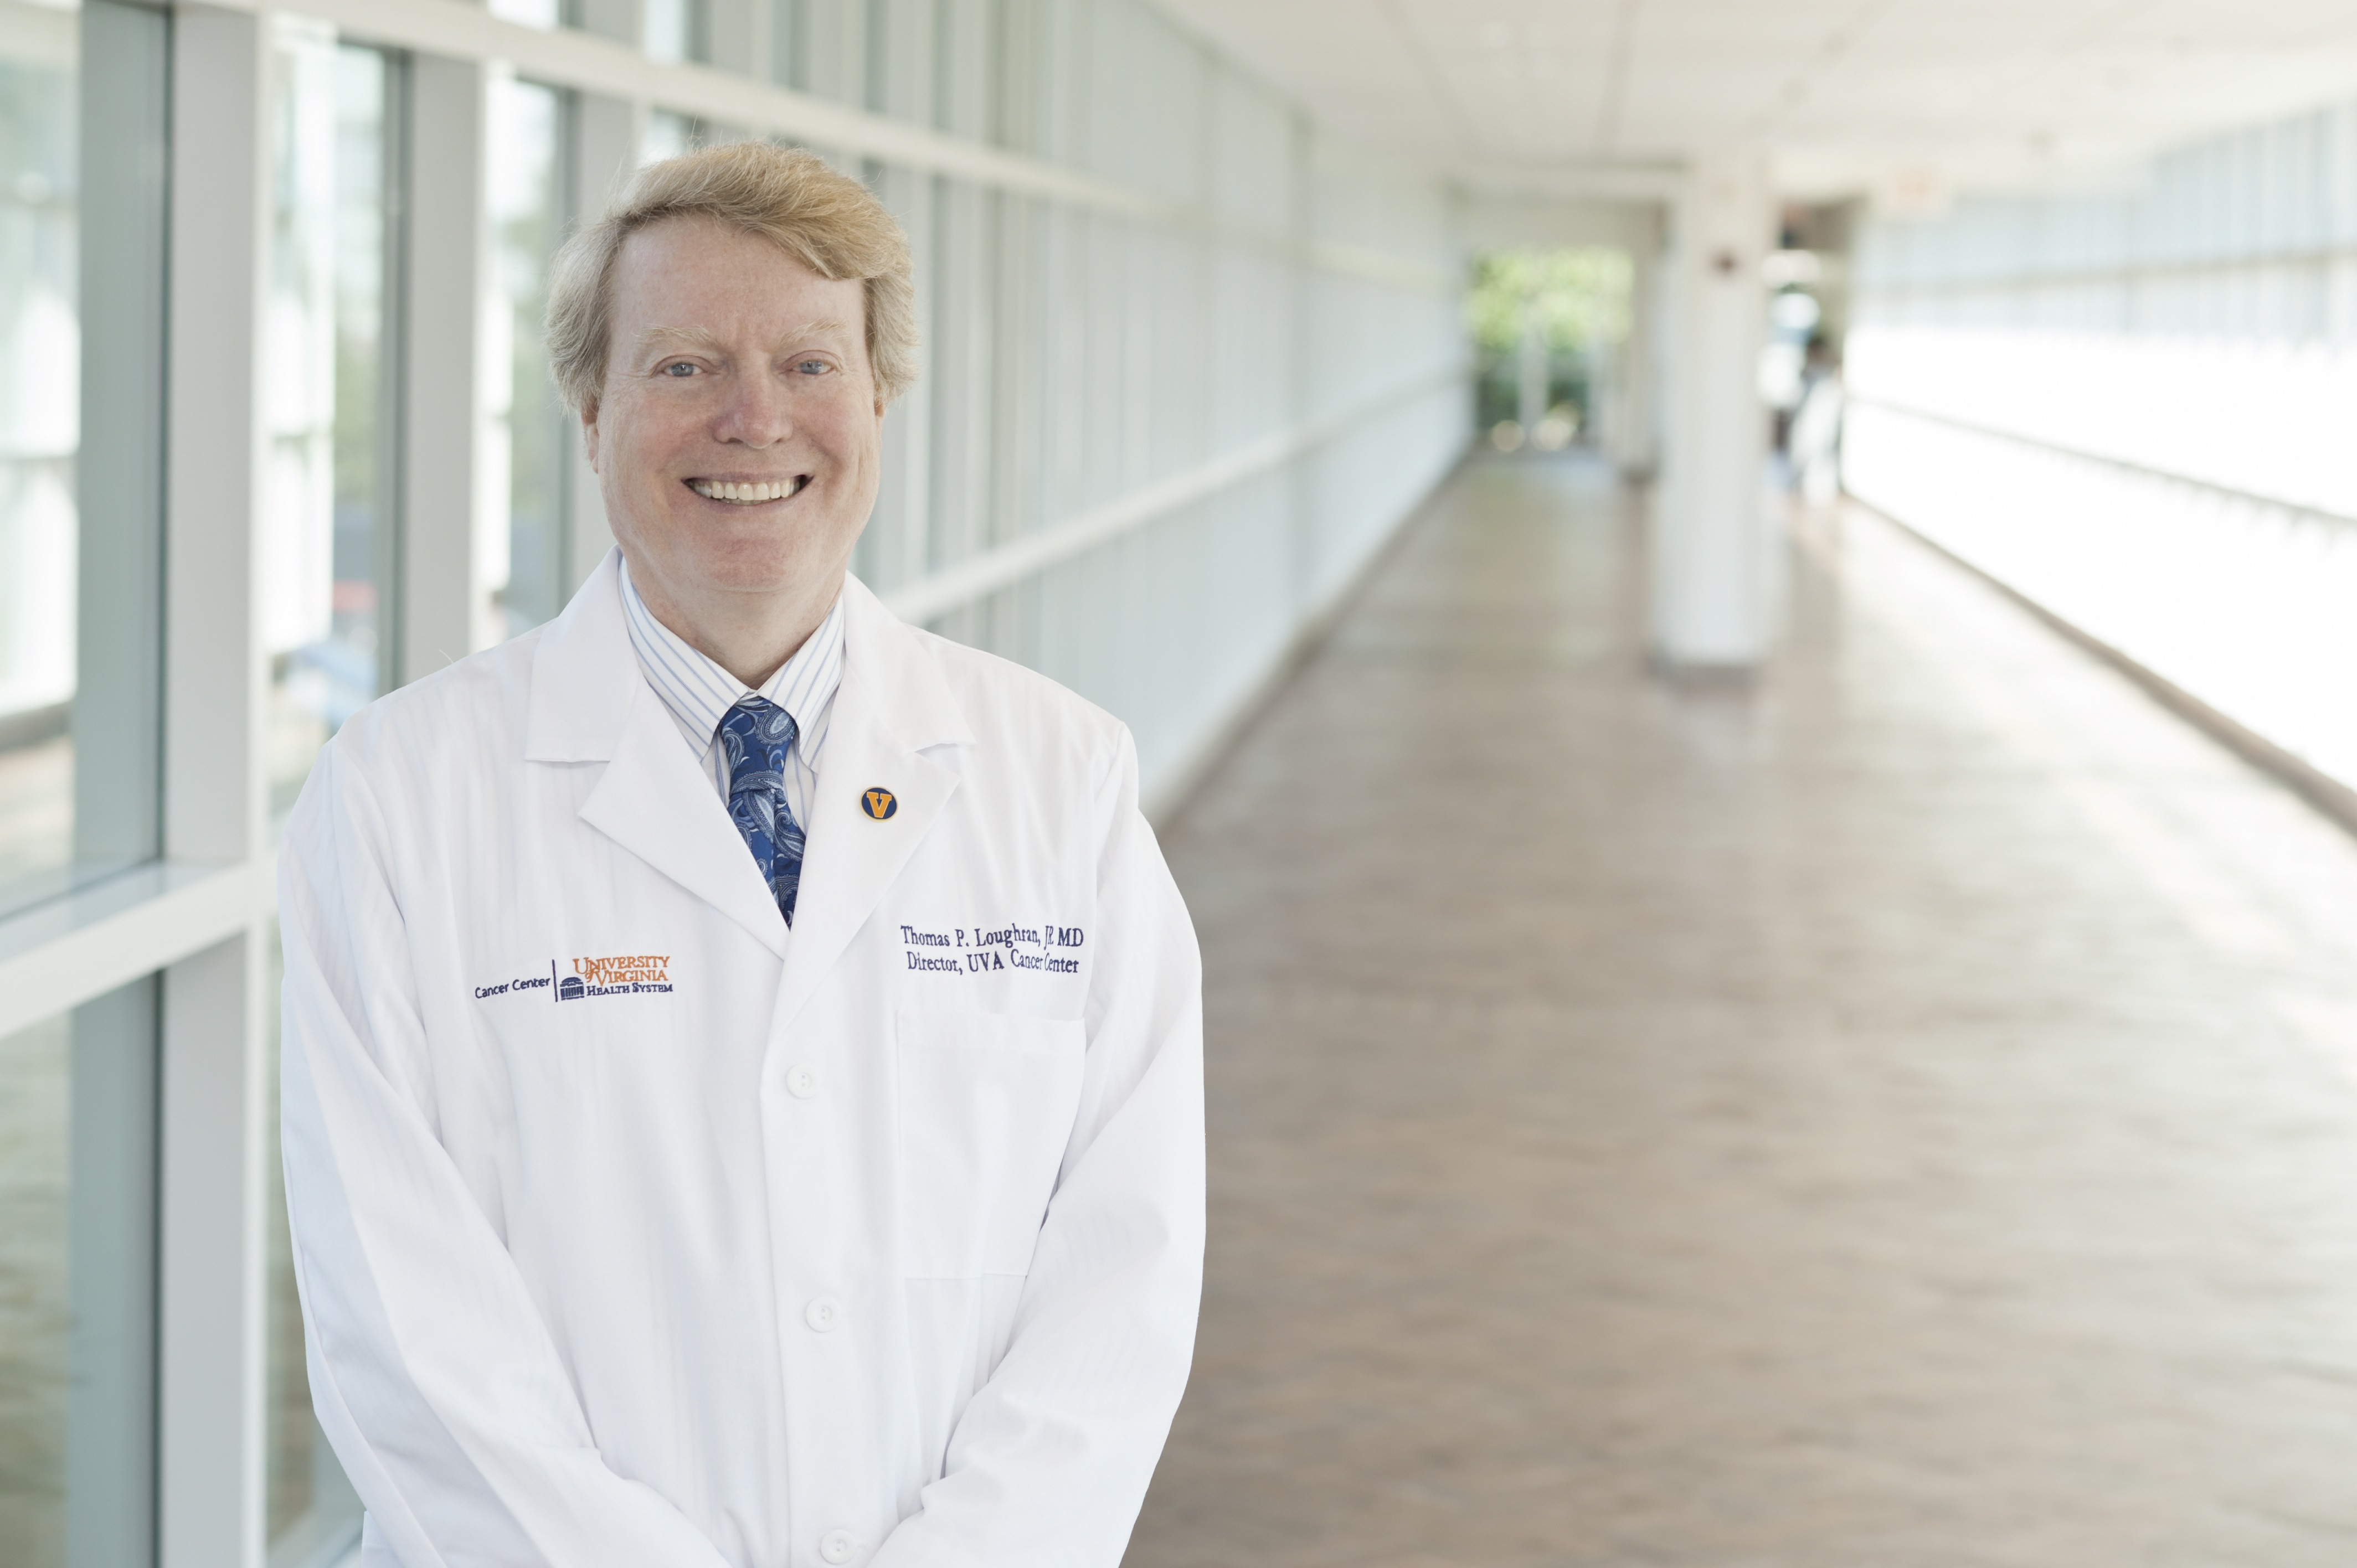 Dr. Thomas Loughran came to UVA seven years ago to lead the UVA Cancer Center.